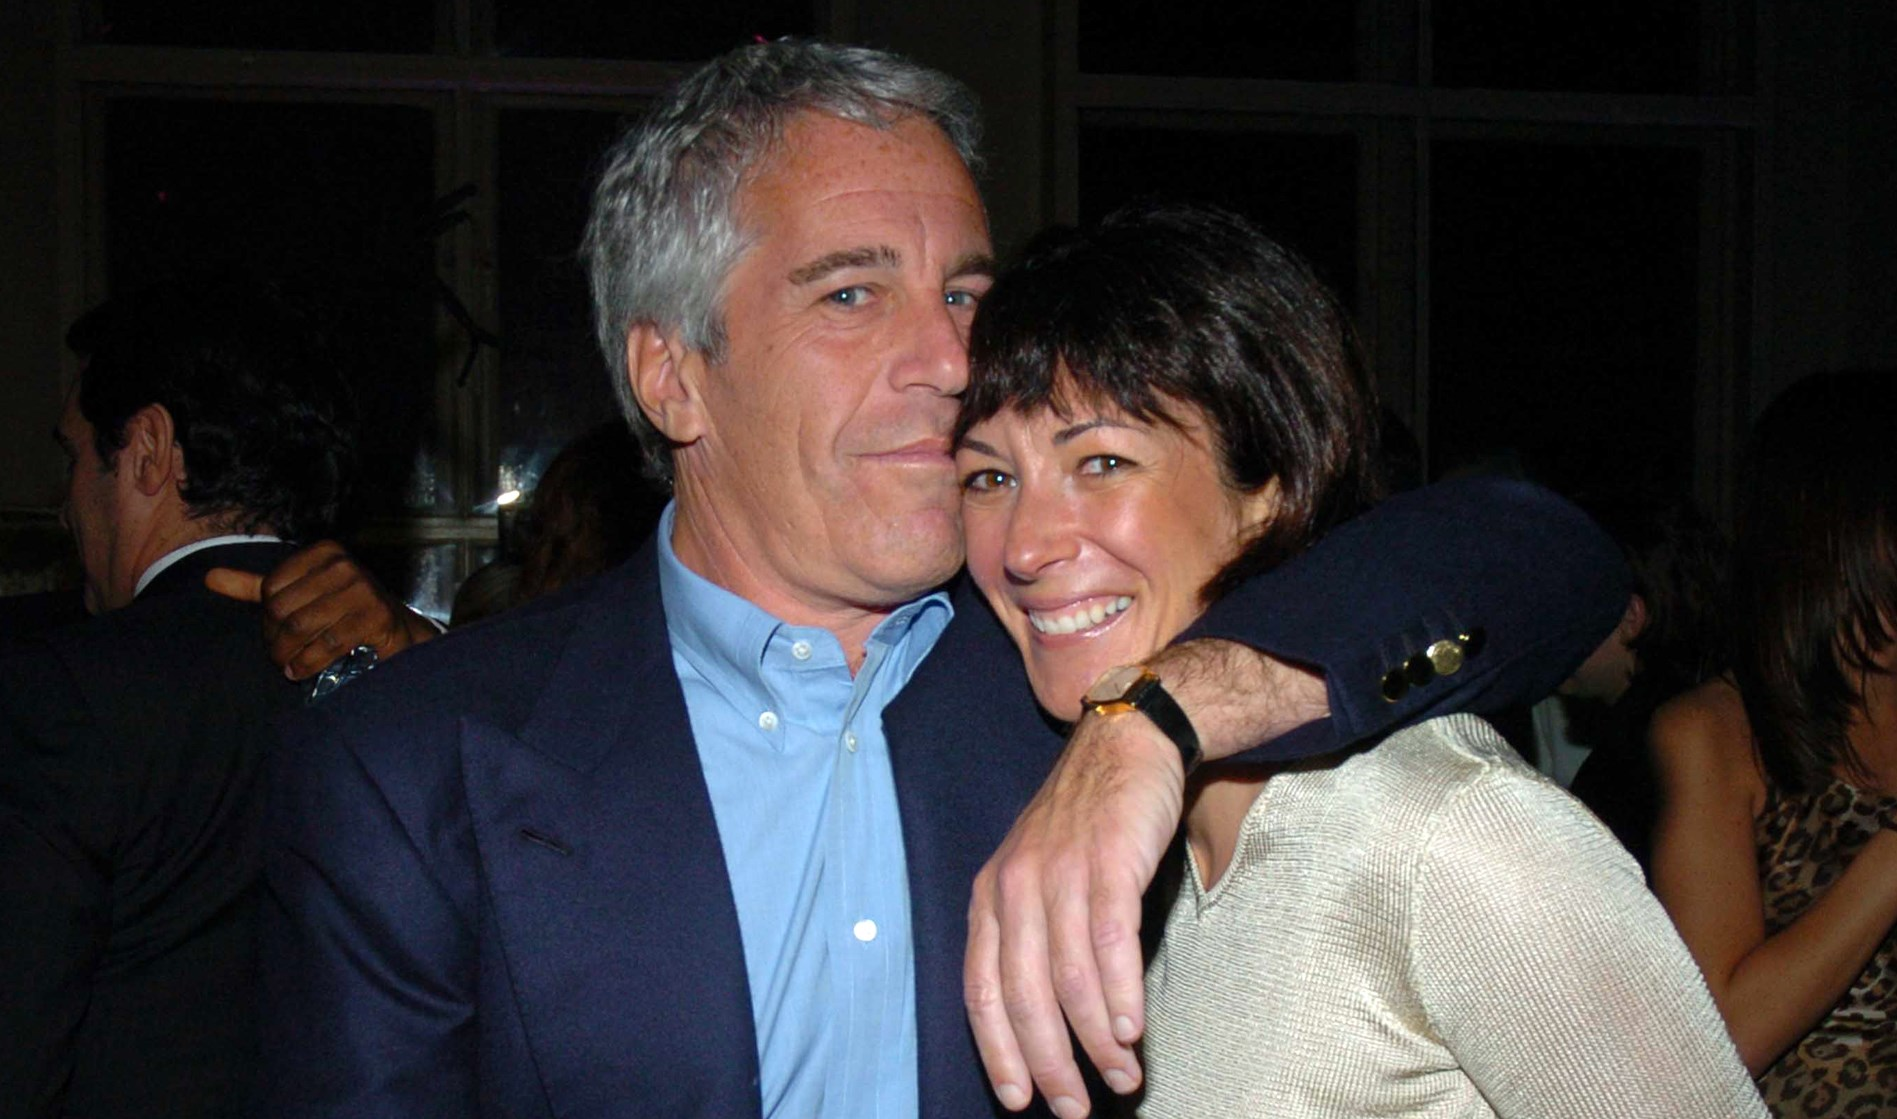 Ghislaine Maxwell, Jeffrey Epstein's Associate Arrested For Sexual Abuse